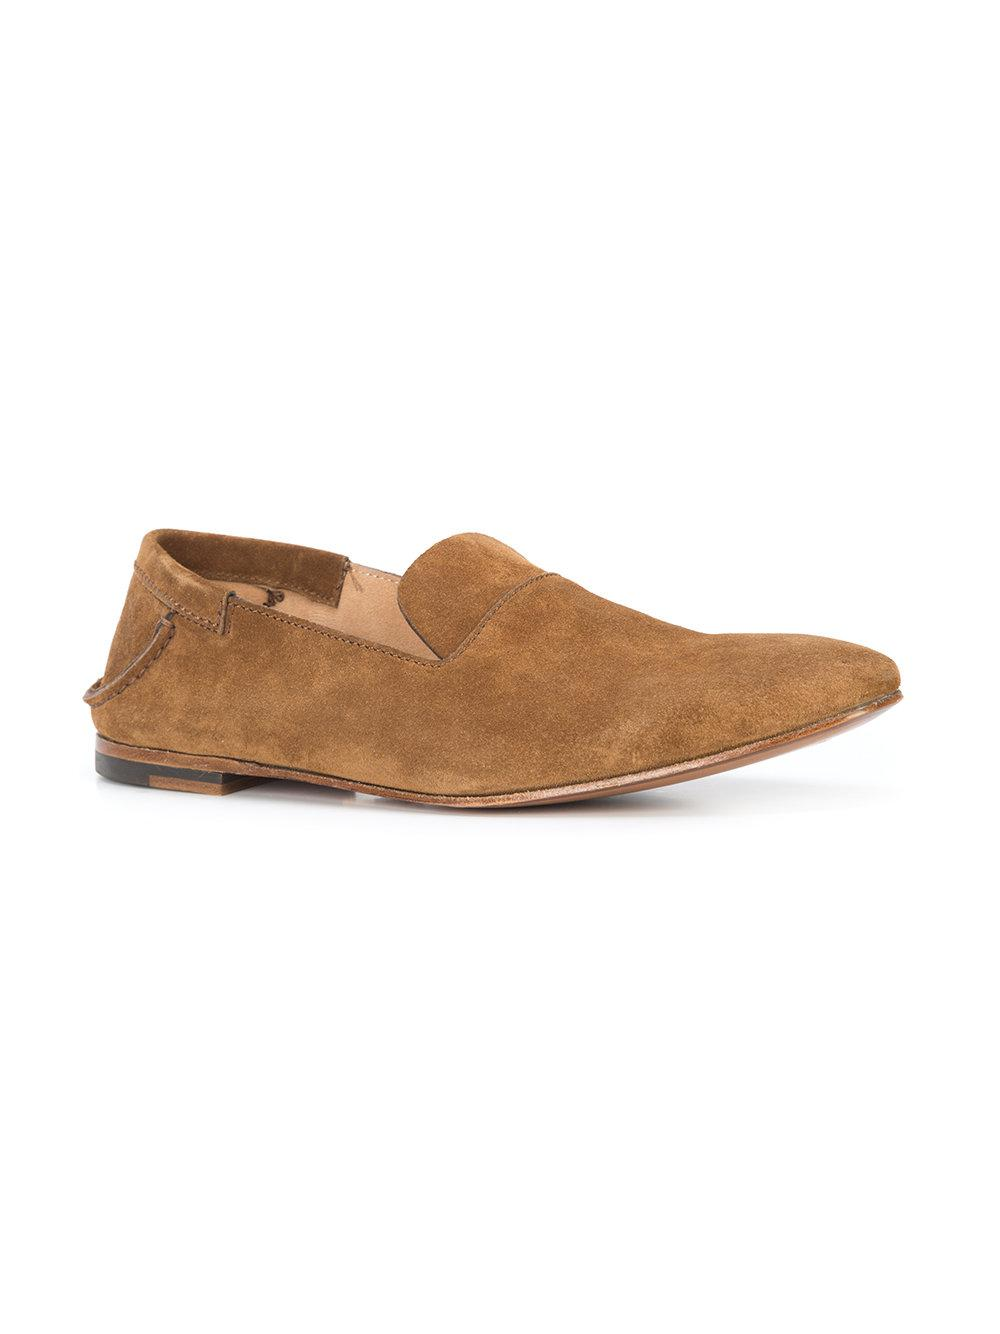 Paul Andrew classic loafers outlet store locations BomLsVElu